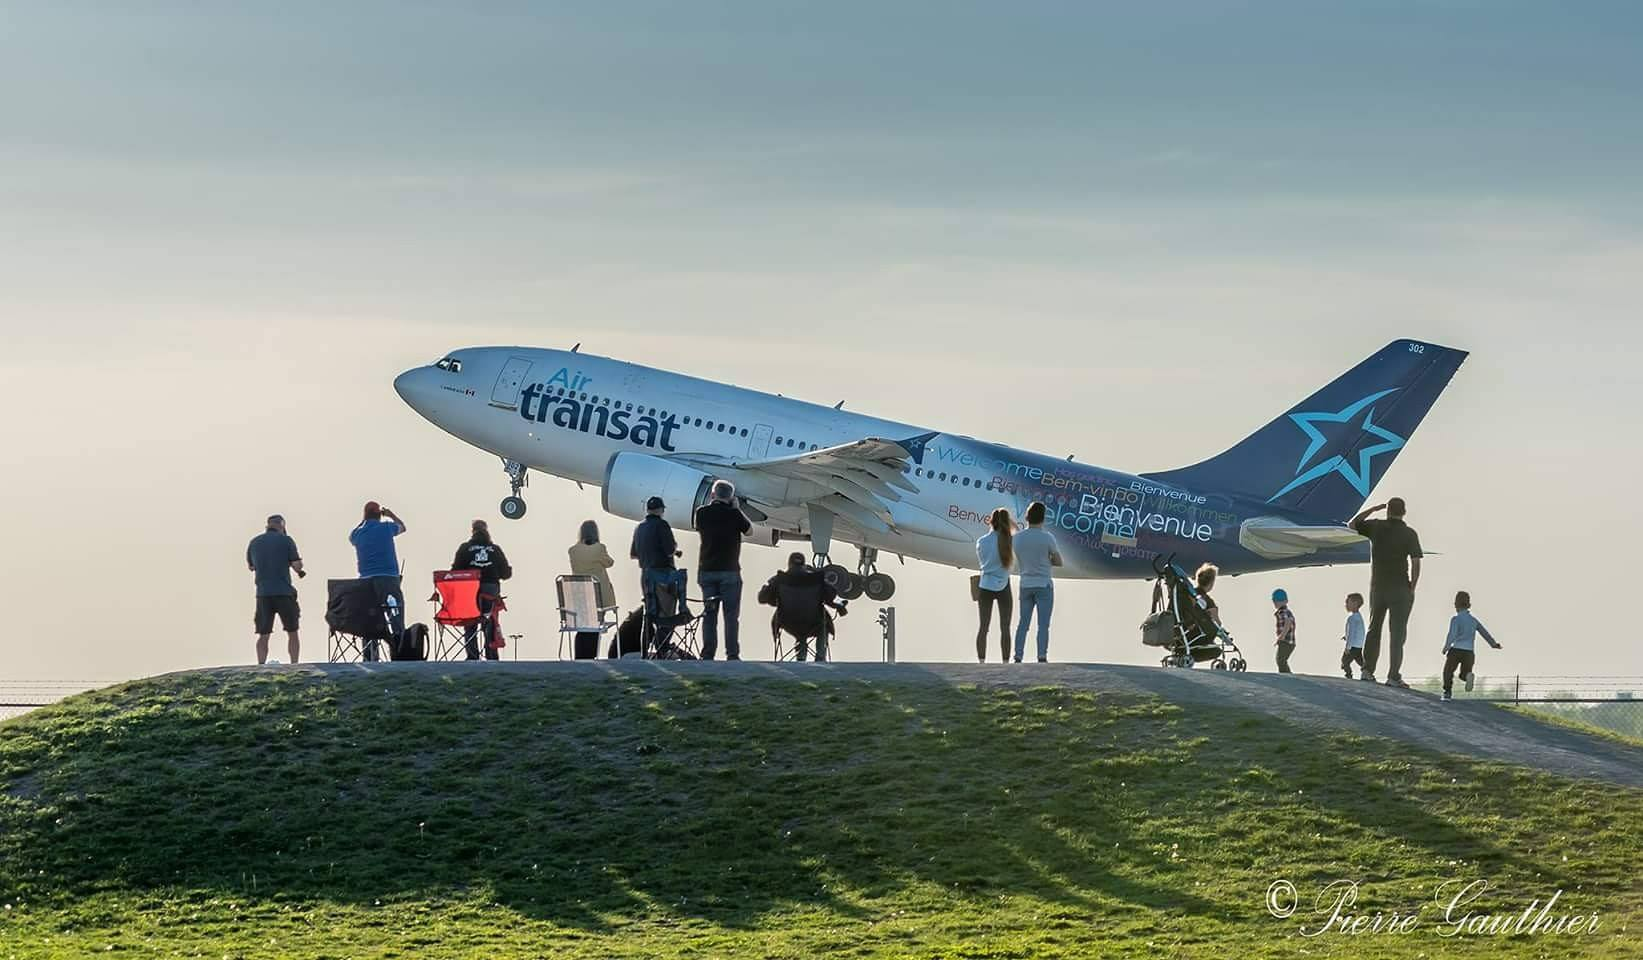 Air Transat Airbus A310 taking off from runway 24L out of Montreal-Pierre Elliott Trudeau International Airport. Photo submitted by Pierre Gauthier